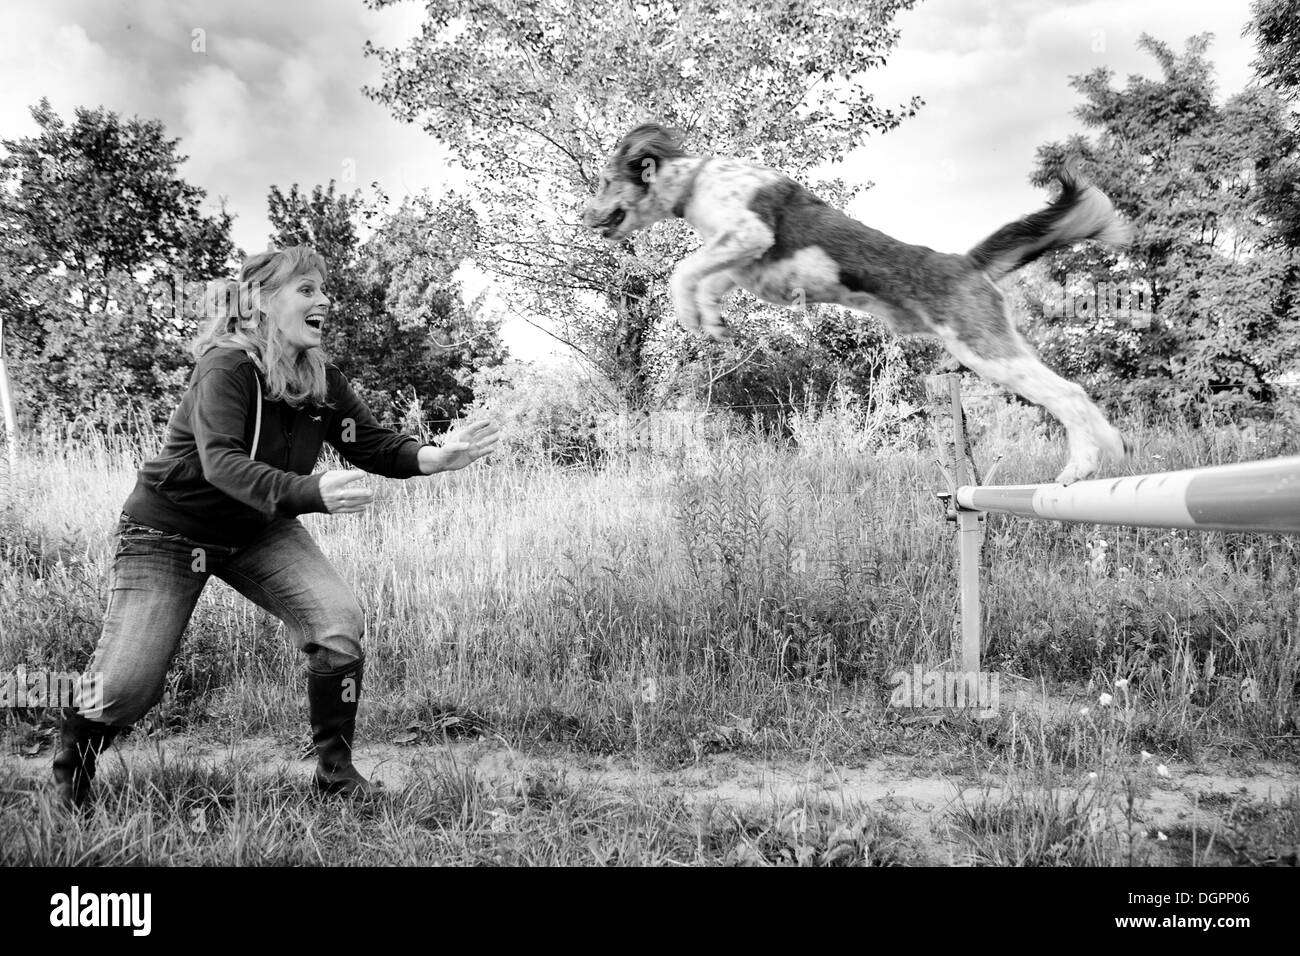 Dog jumping from a boom barrier into the arms of its trainer standing with open arms to catch it - Stock Image